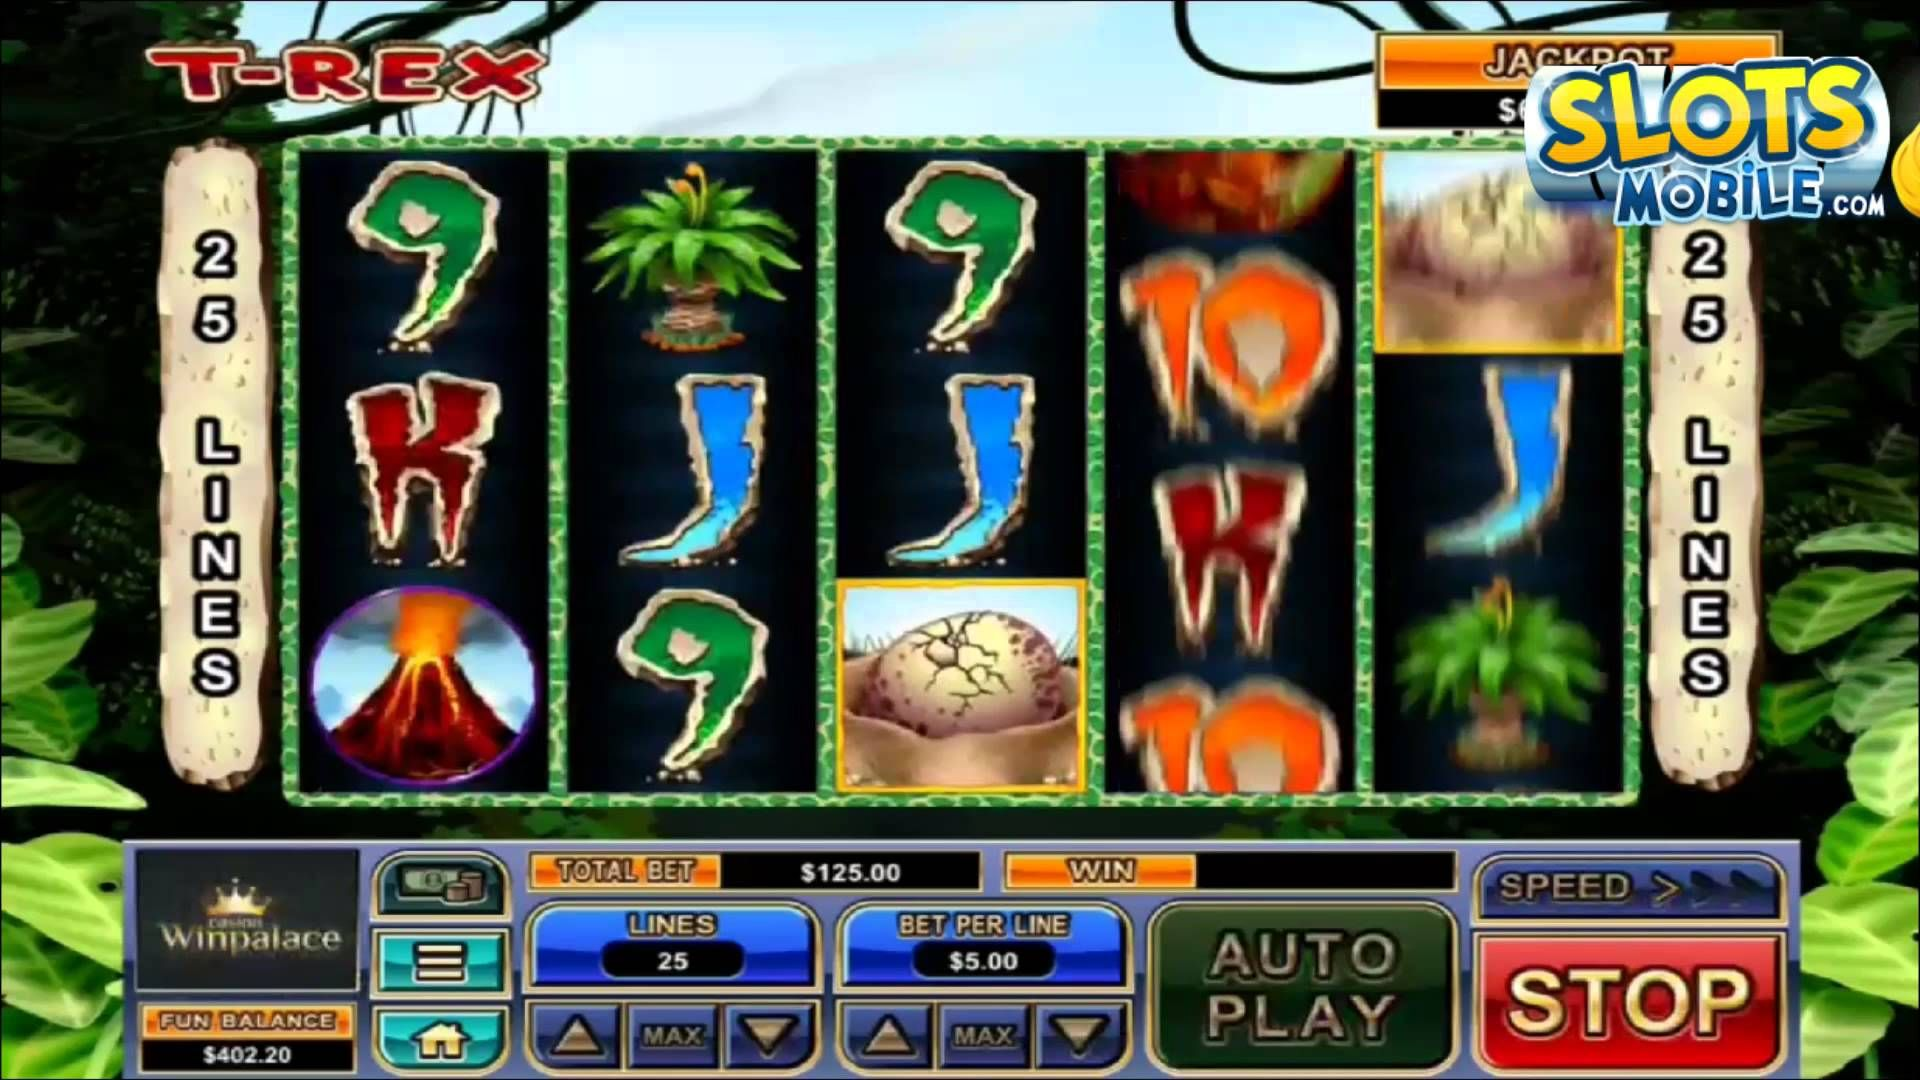 Here's a video review of TRex mobile slots from Real Time